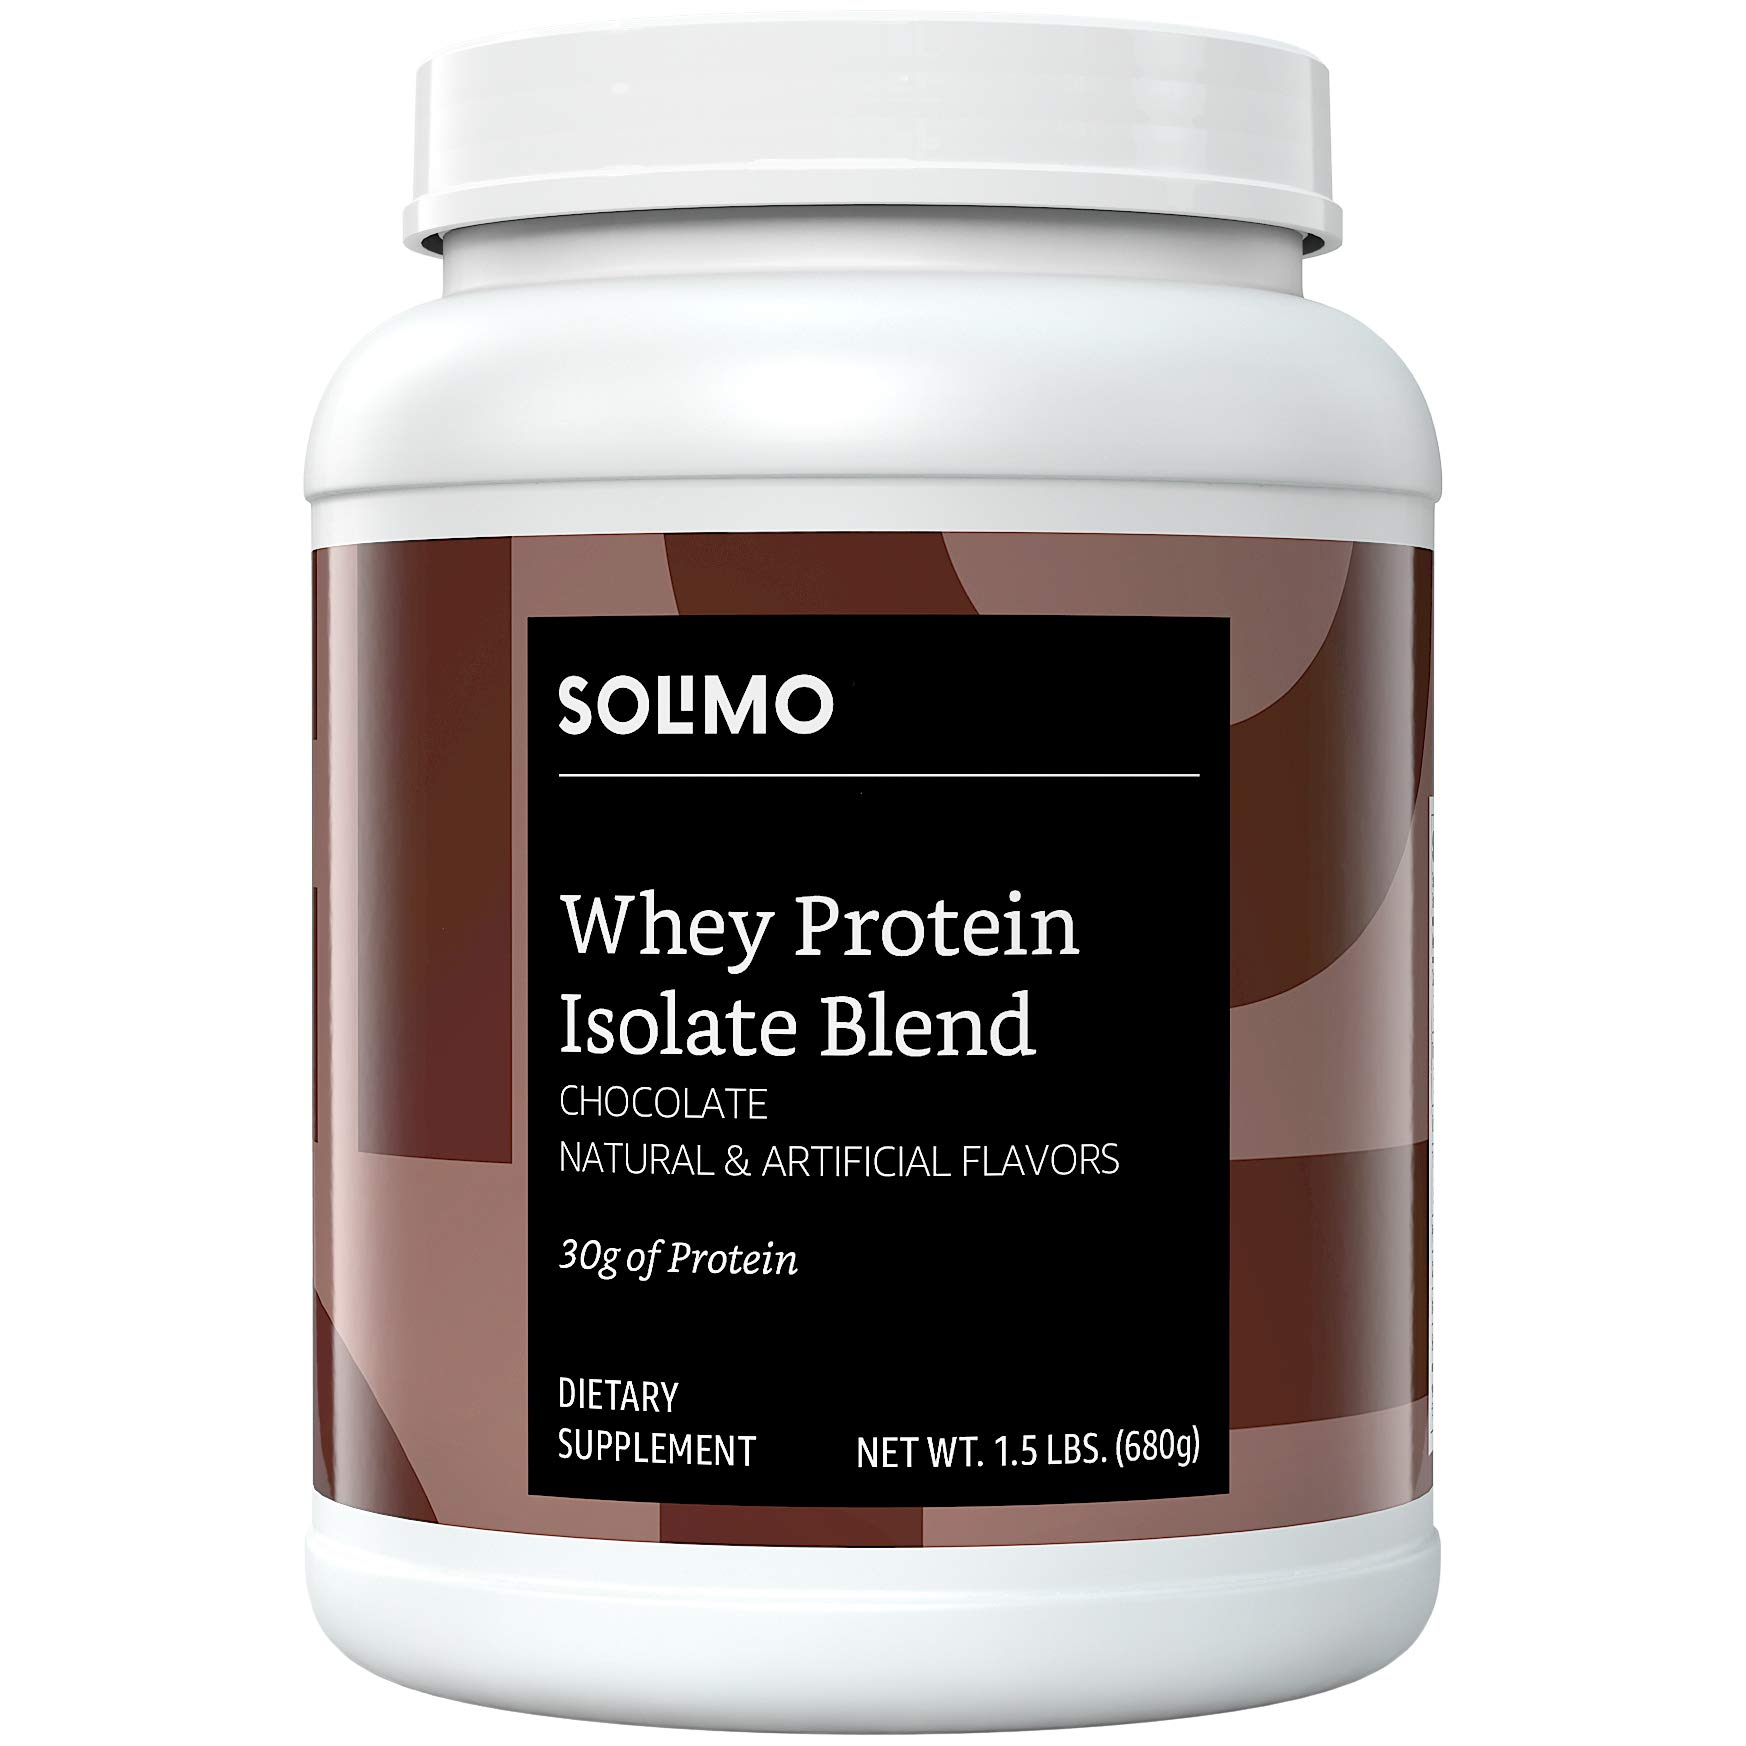 Amazon Brand - Solimo Whey Protein Isolate Blend, Chocolate, 1.5 Pound (18 Servings)